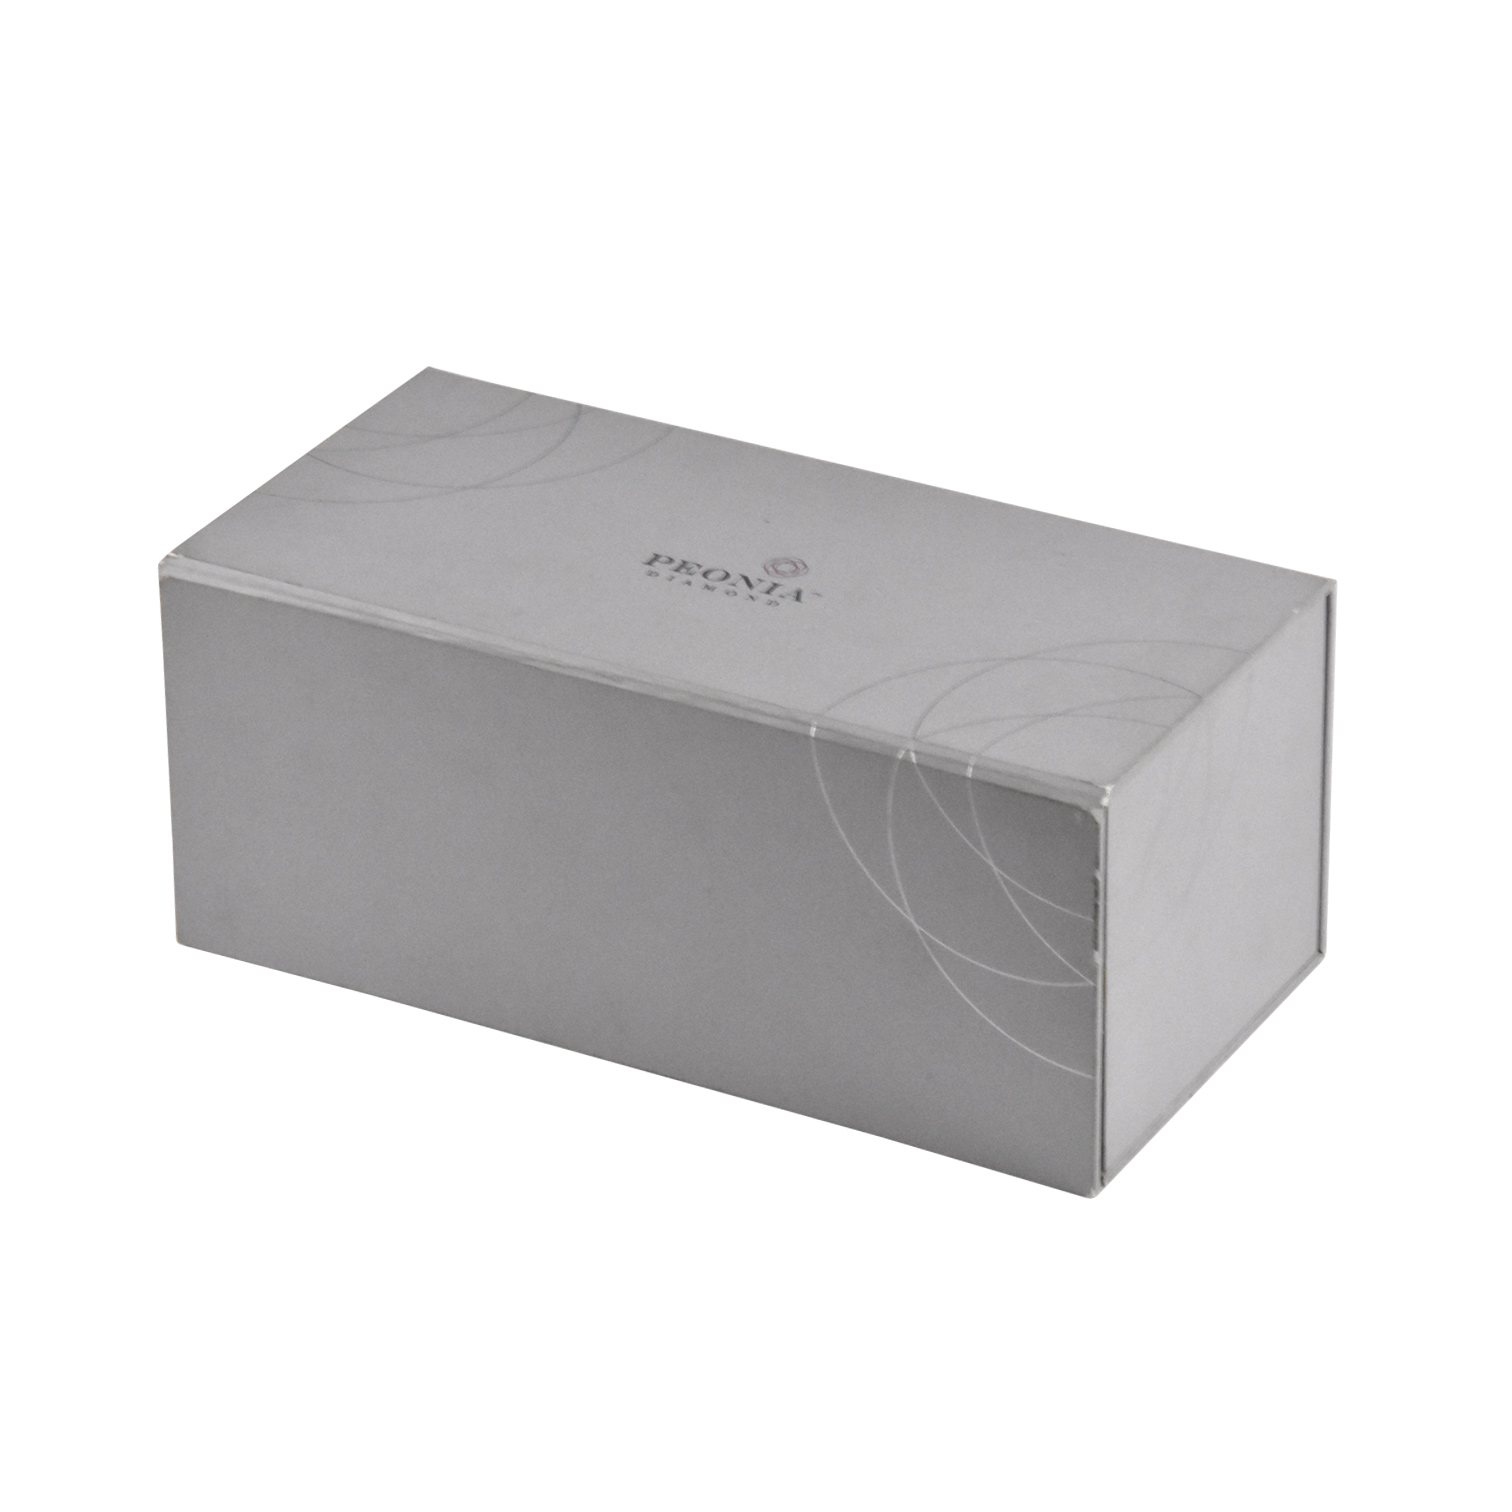 Luxury double-layer folderbale leather jewelry display gift box with drawer